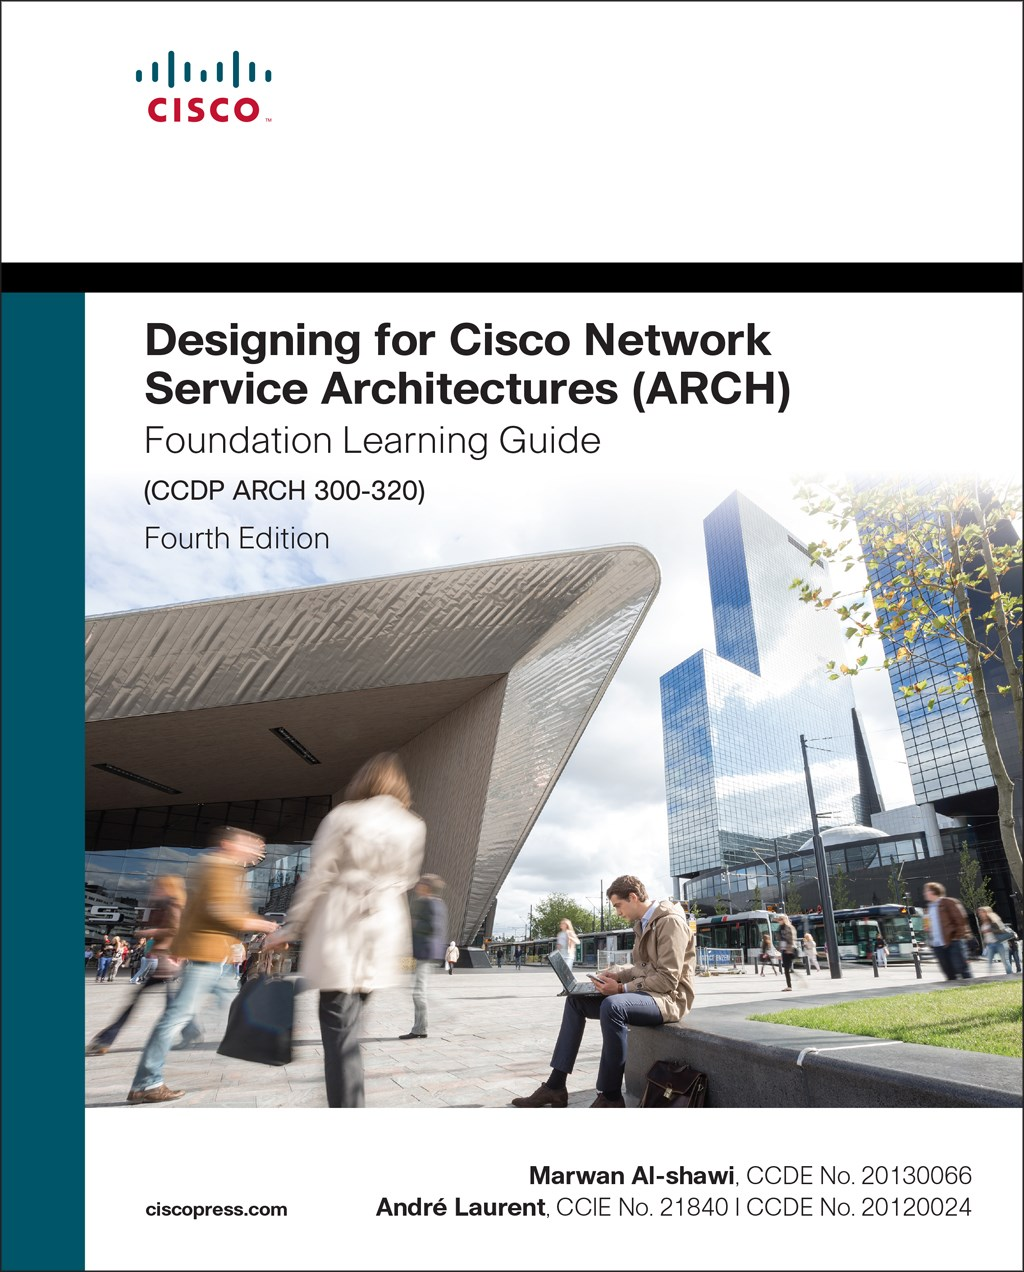 Designing for Cisco Network Service Architectures (ARCH) Foundation Learning Guide: CCDP ARCH 300-320, 4th Edition